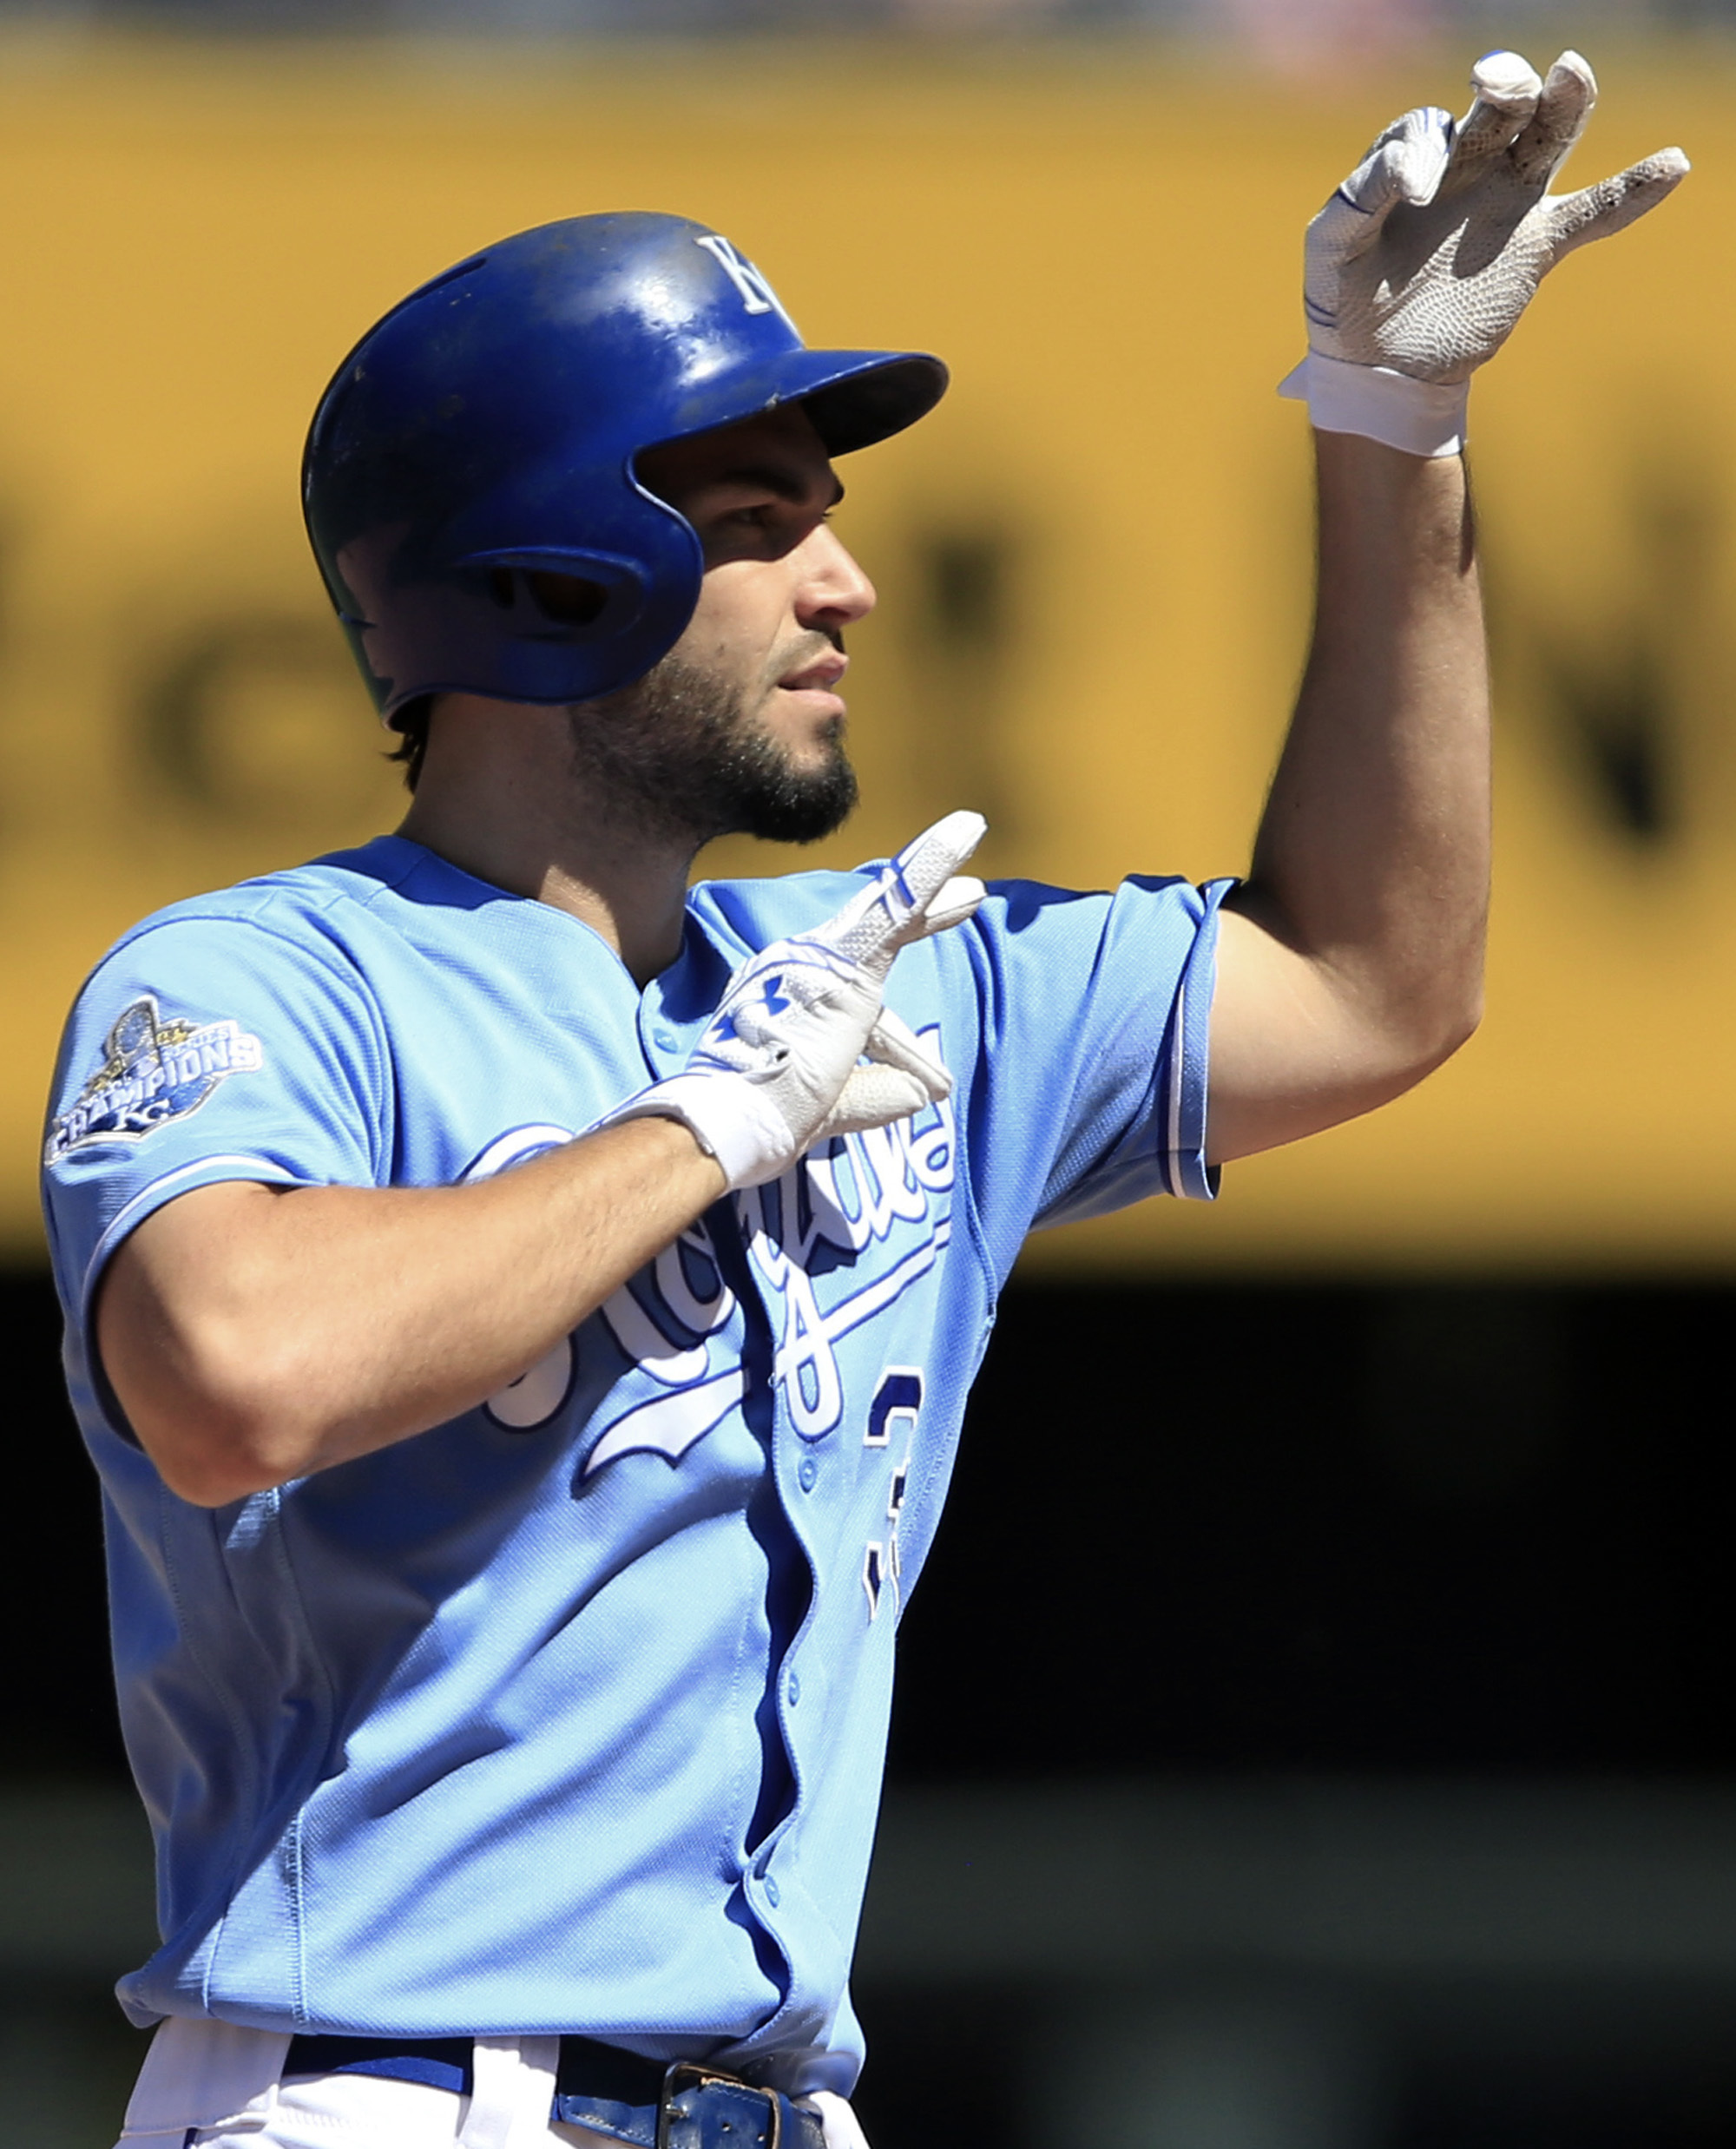 Kansas City Royals' Eric Hosmer gestures to teammates after his RBI-double during the sixth inning of a baseball game against the Minnesota Twins at Kauffman Stadium in Kansas City, Mo., Sunday, Aug. 21, 2016. (AP Photo/Orlin Wagner)